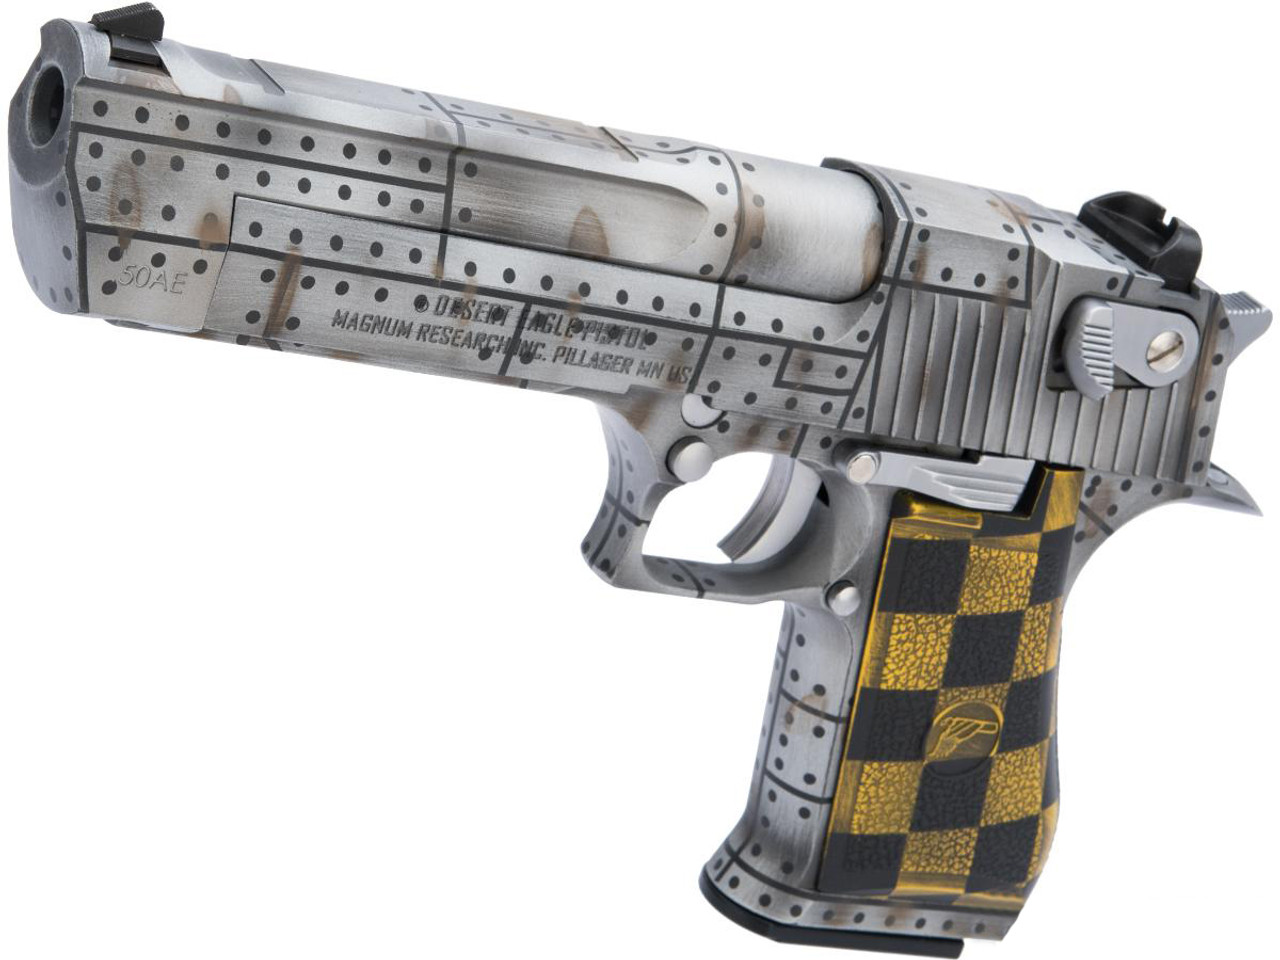 We Tech Desert Eagle 50 Ae Full Metal Gas Blowback Airsoft Pistol By Cybergun W Black Sheep Arms Custom Cerakote Color Warbird Hero Outdoors